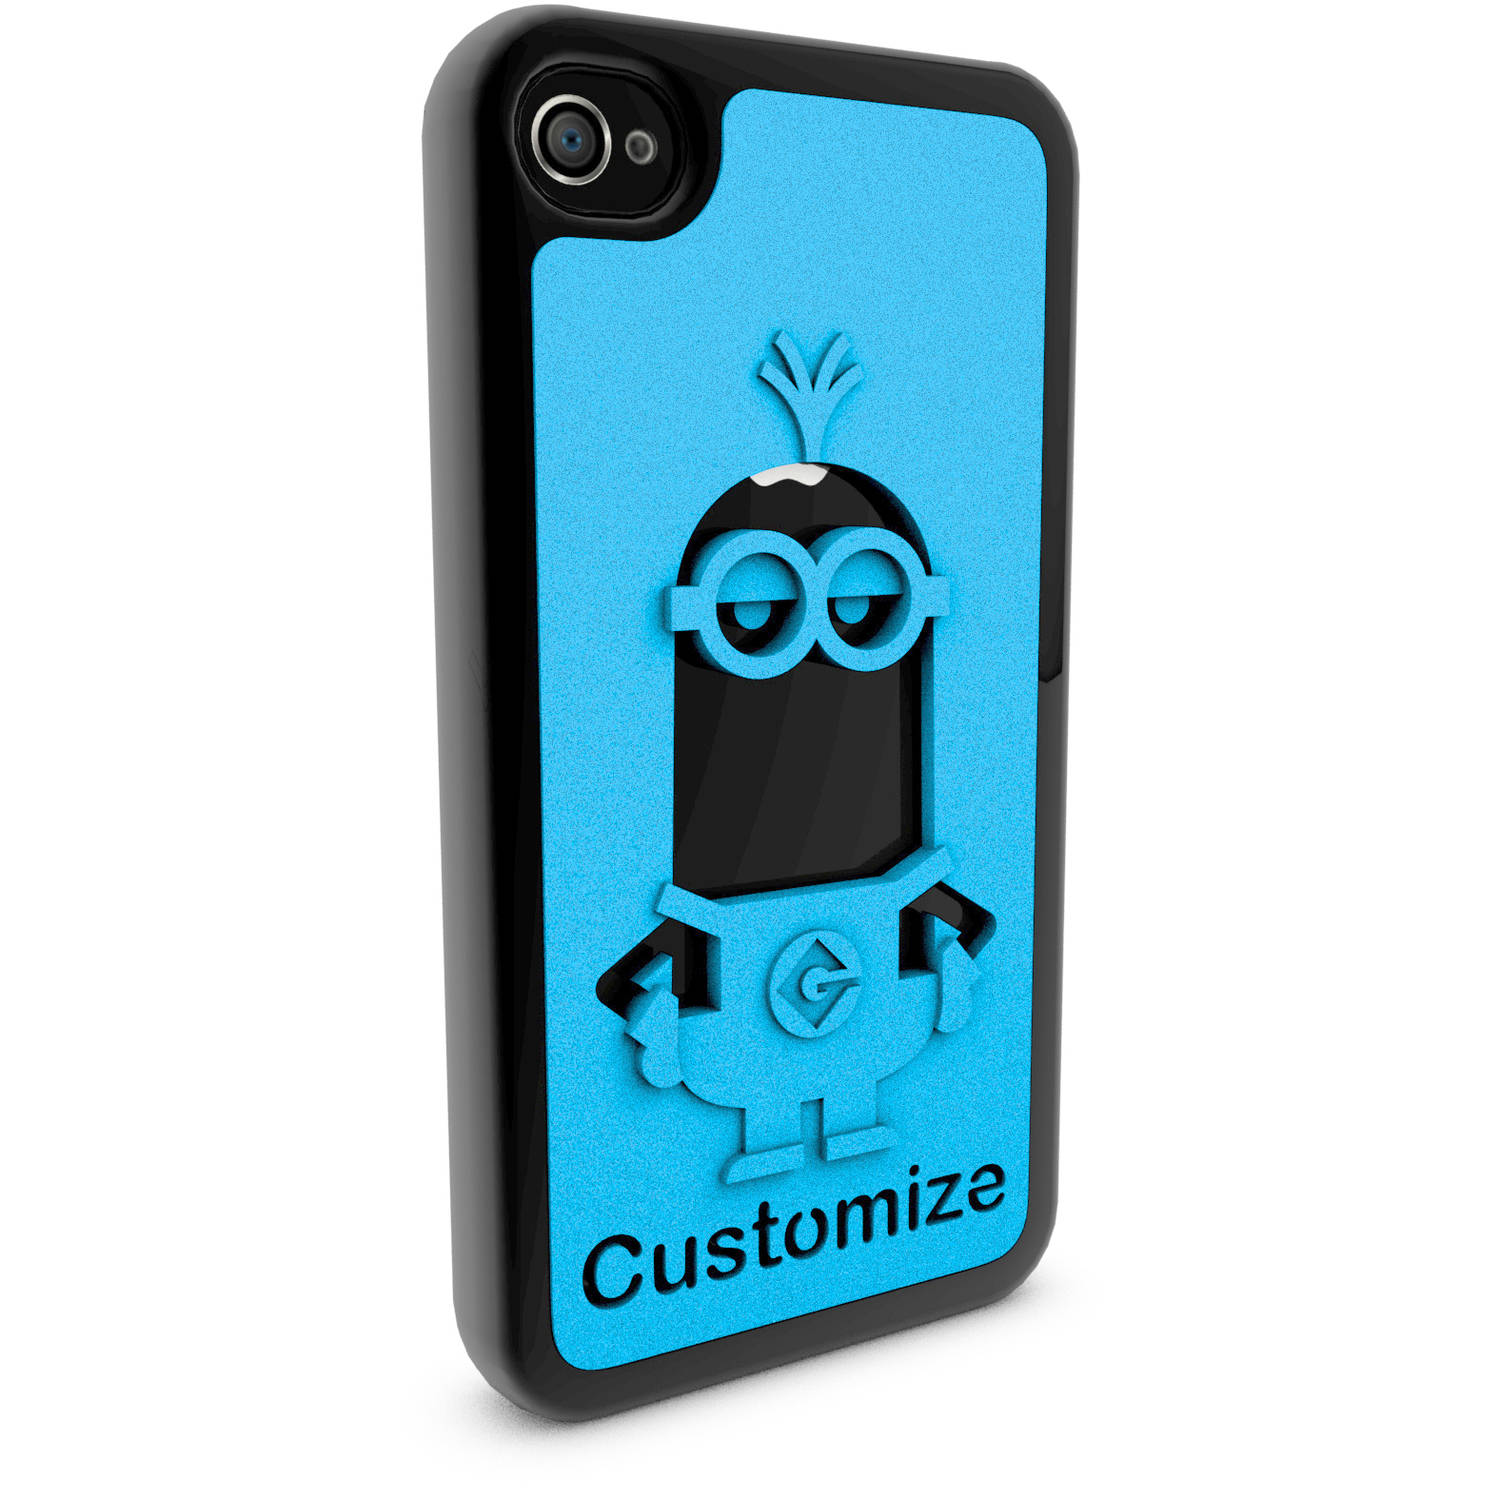 Apple iPhone 4 and 4S 3D Printed Custom Phone Case - Despicable Me - Kevin 2